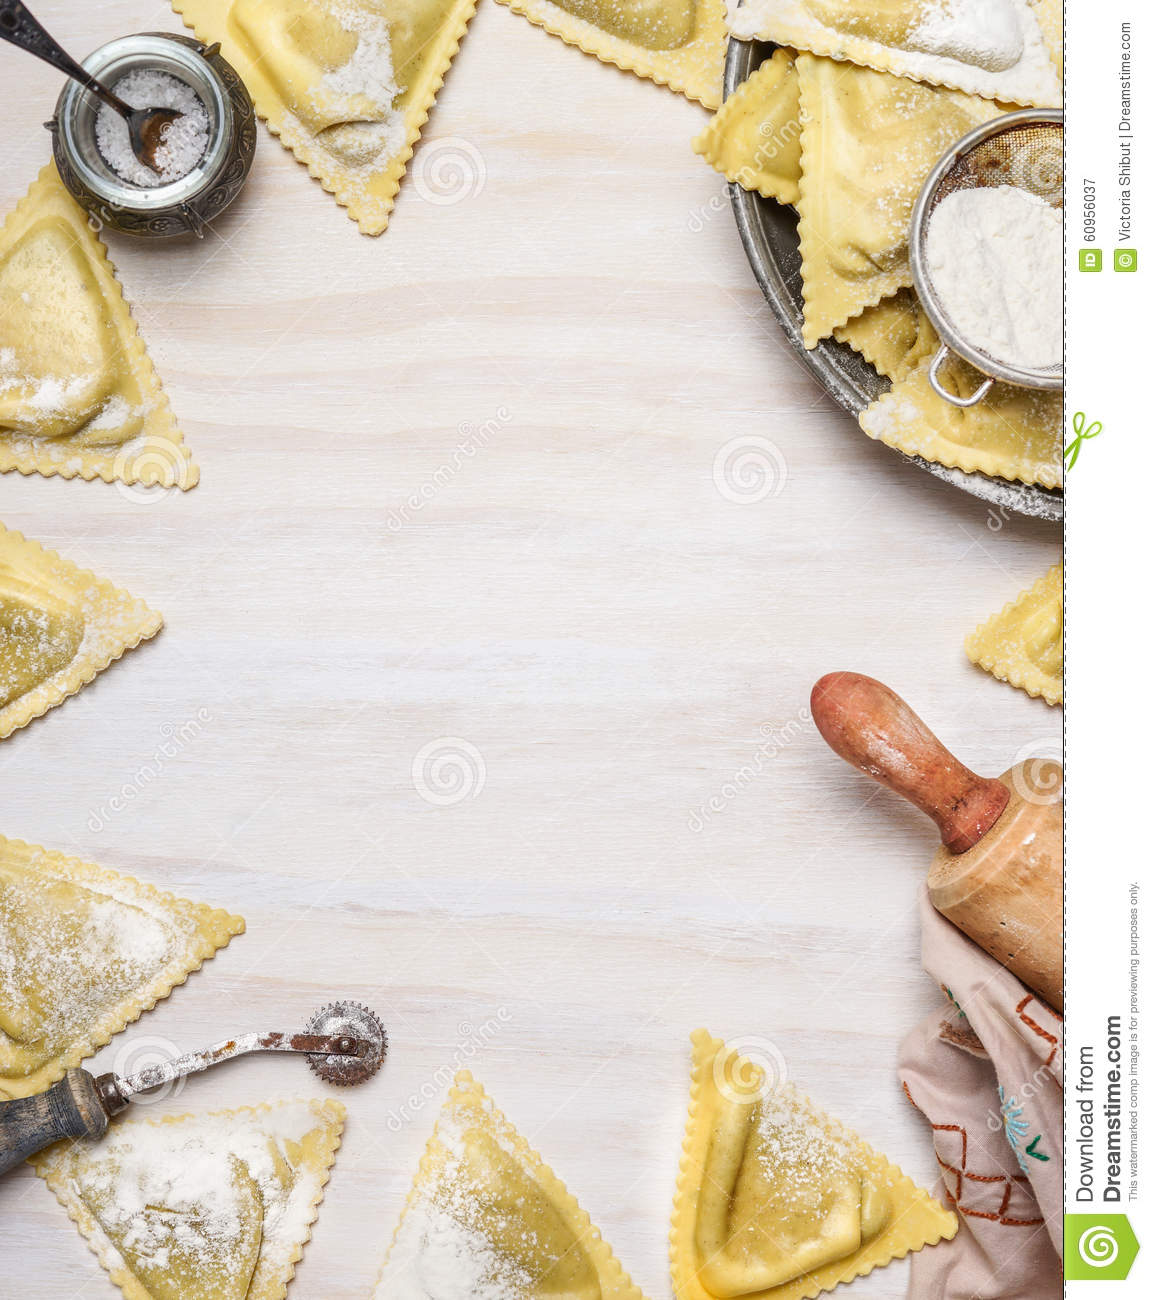 Ravioli Triangoli Making, Preparation On White Wooden Background ...